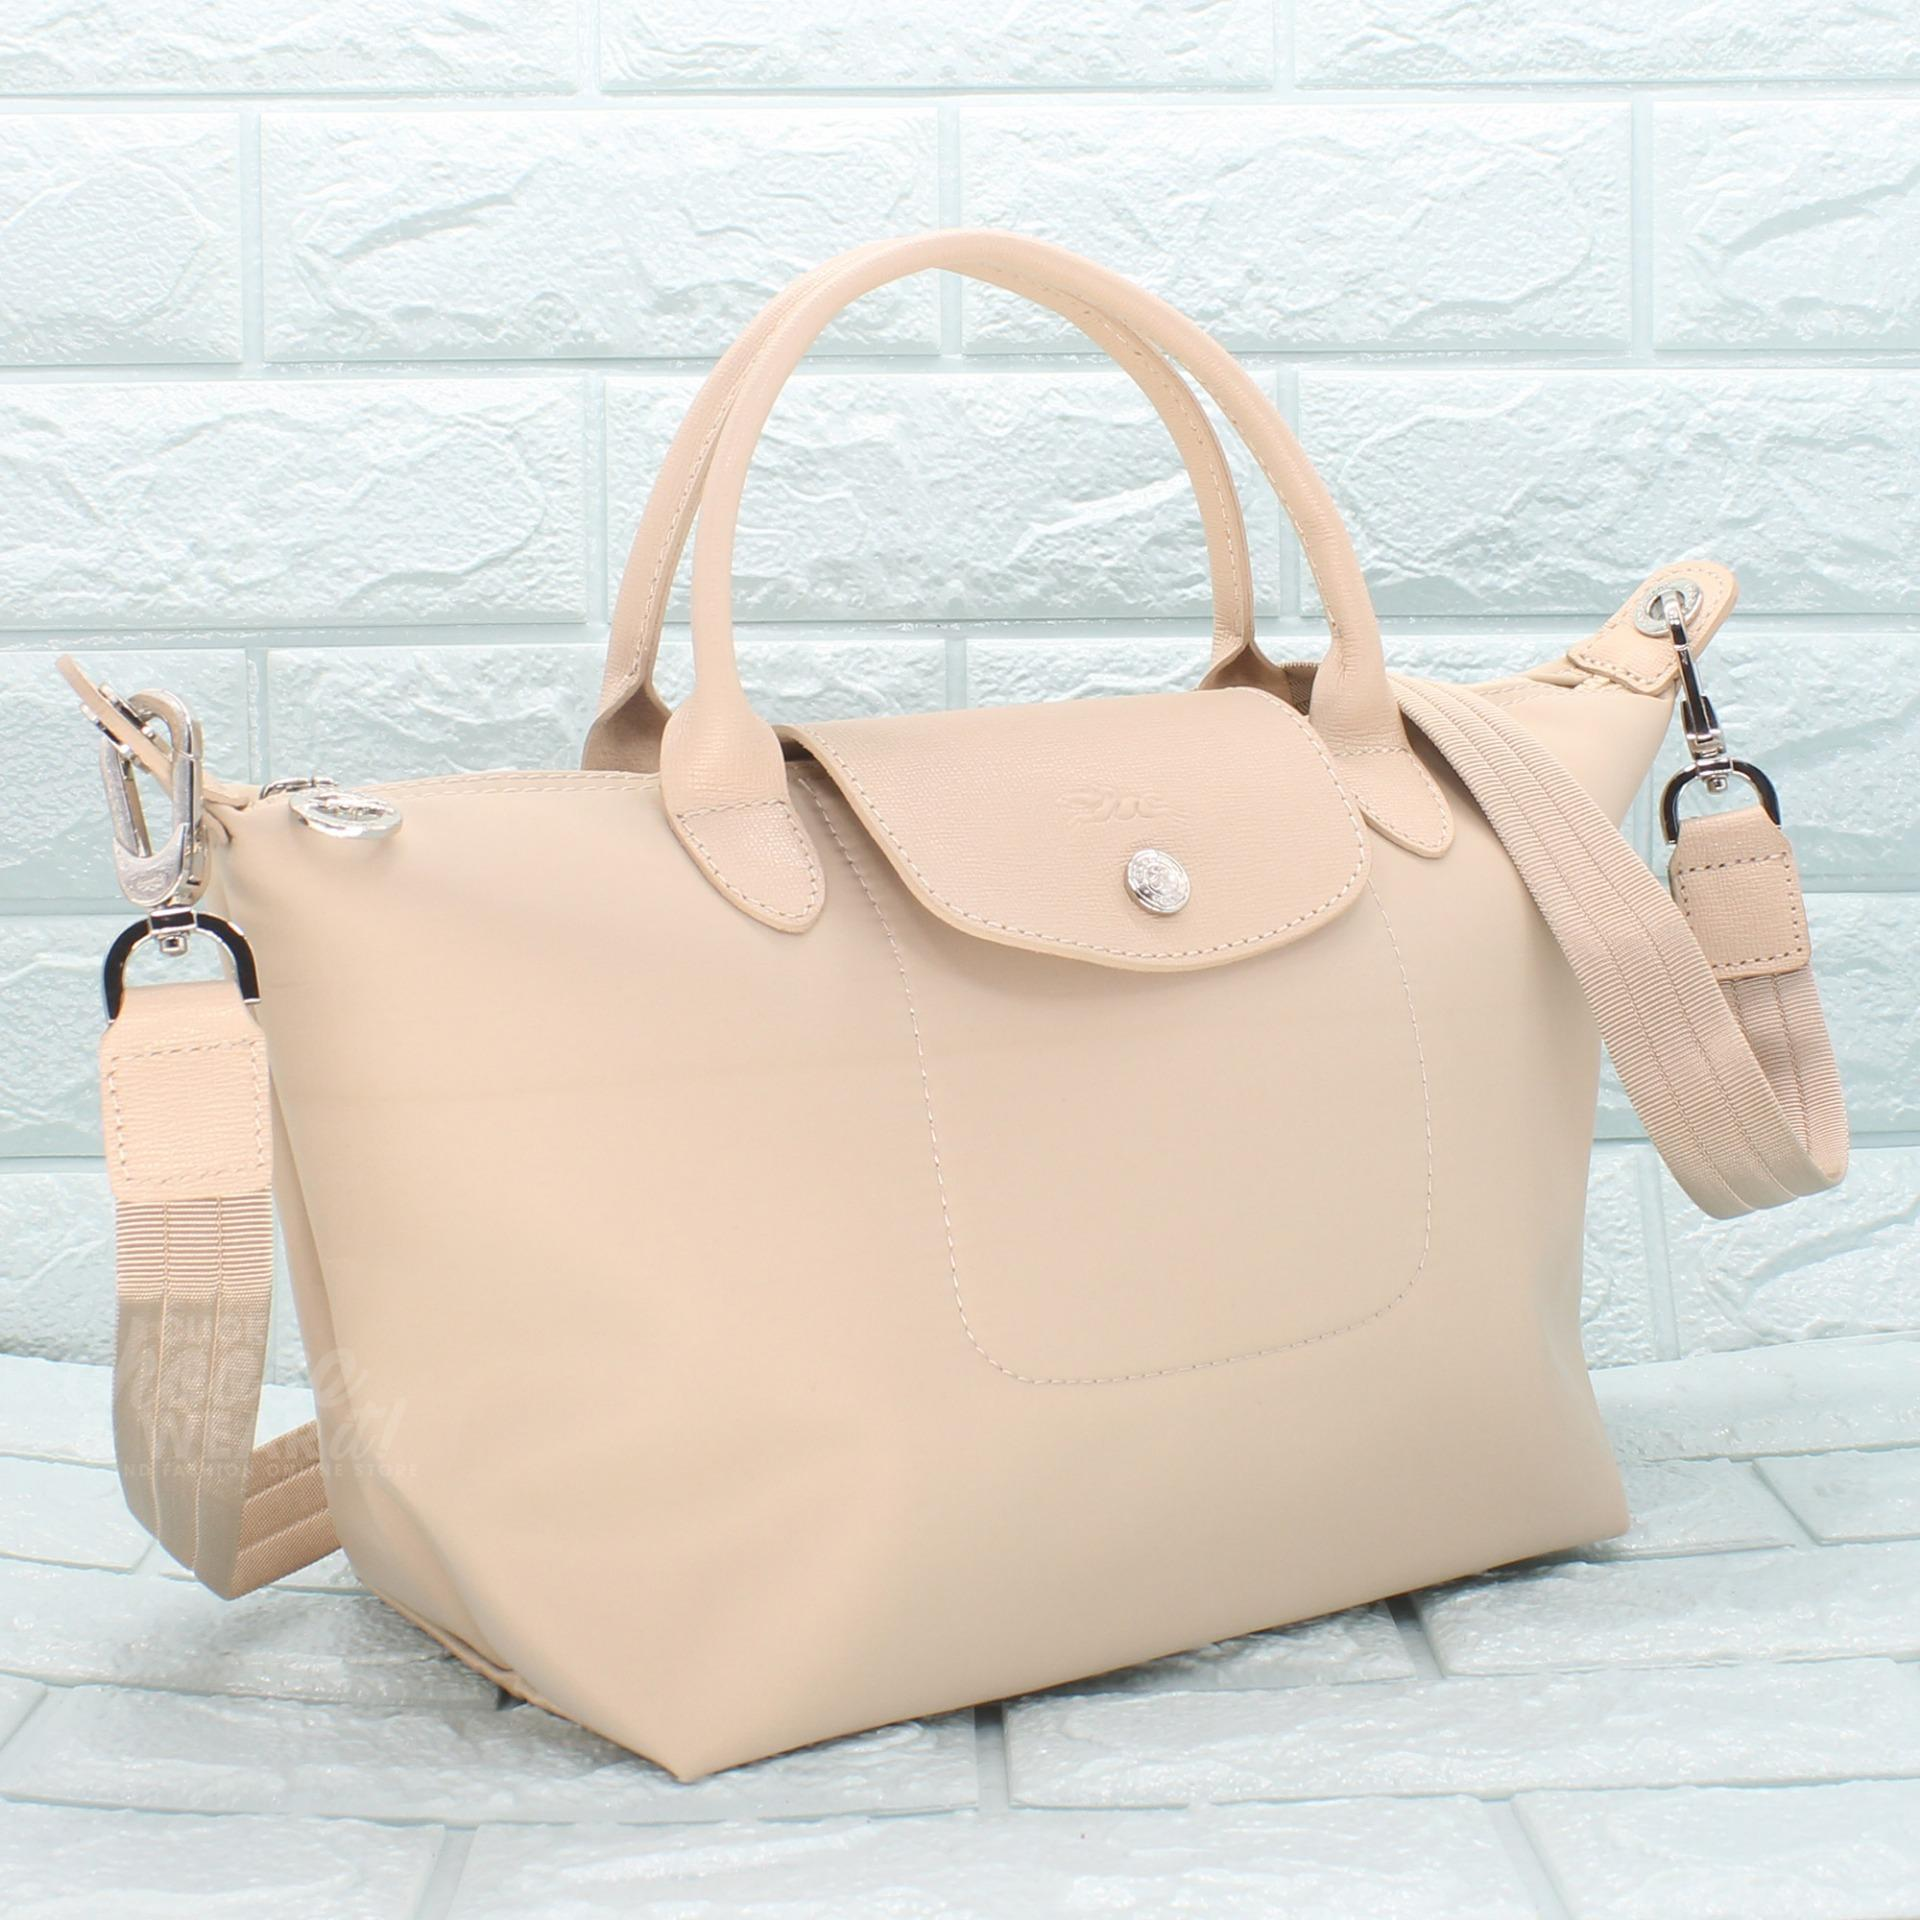 Buy Sell Cheapest Longchamp Neo Small Best Quality Product Deals Black Authentic Made In France Le Pliage Top Handle Tote Rice White